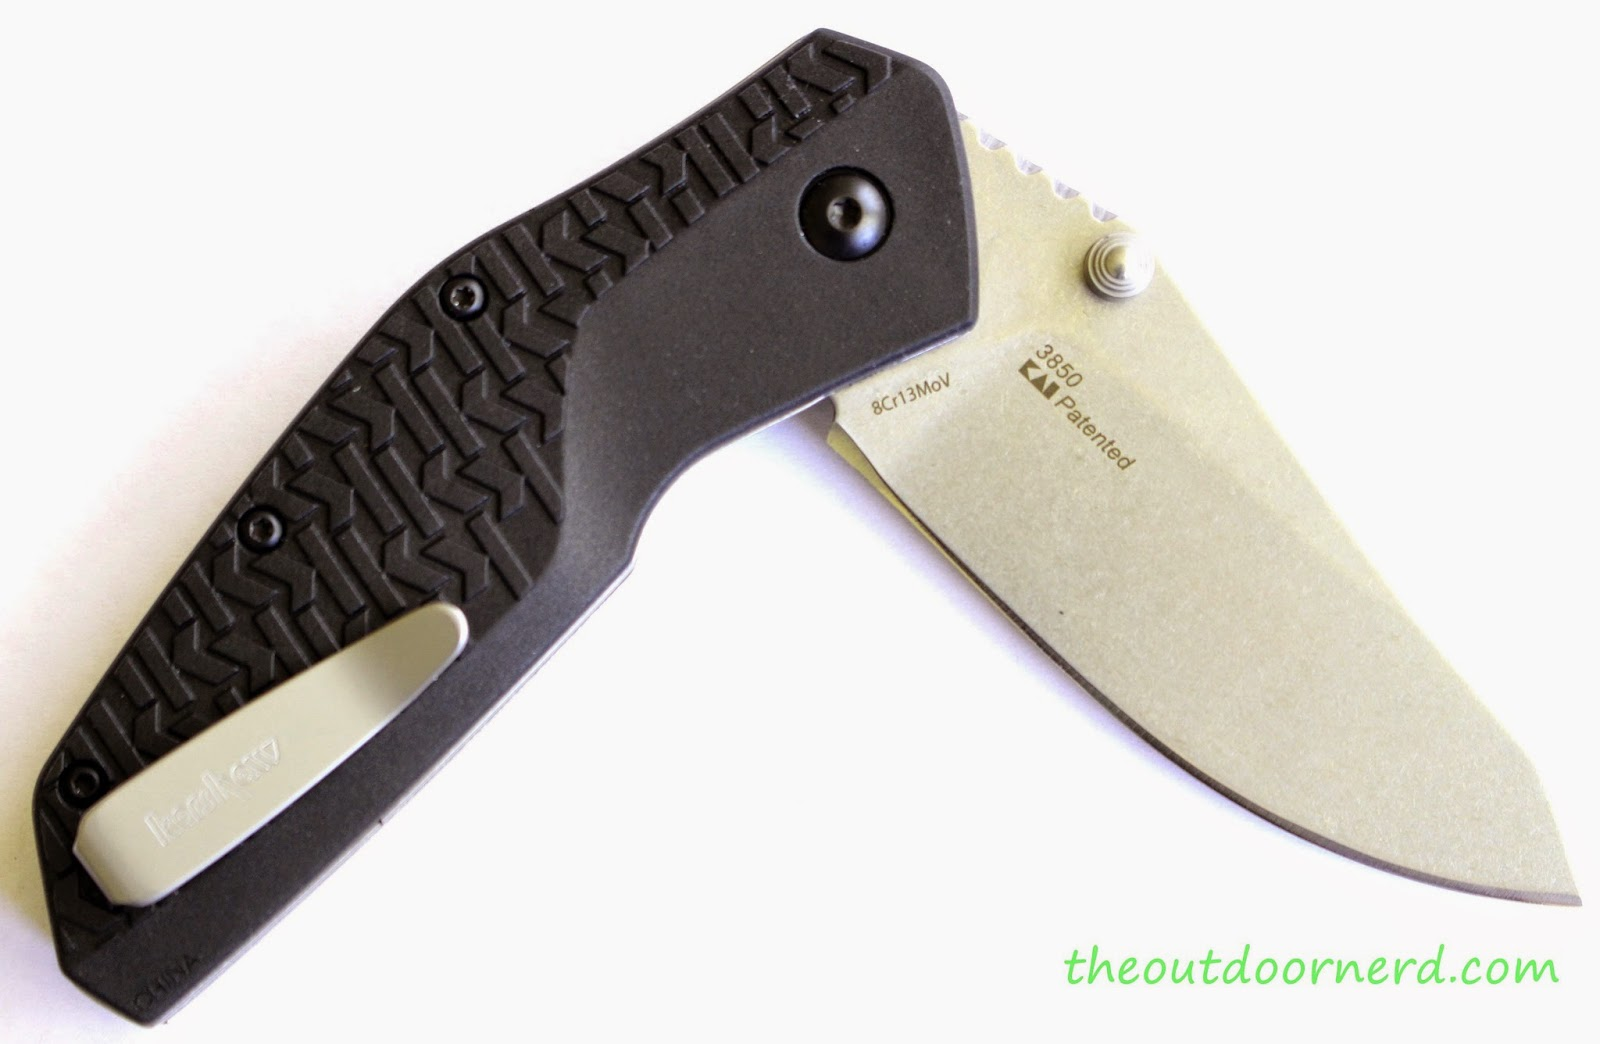 Kershaw Swerve EDC Pocket Knife: Product Link